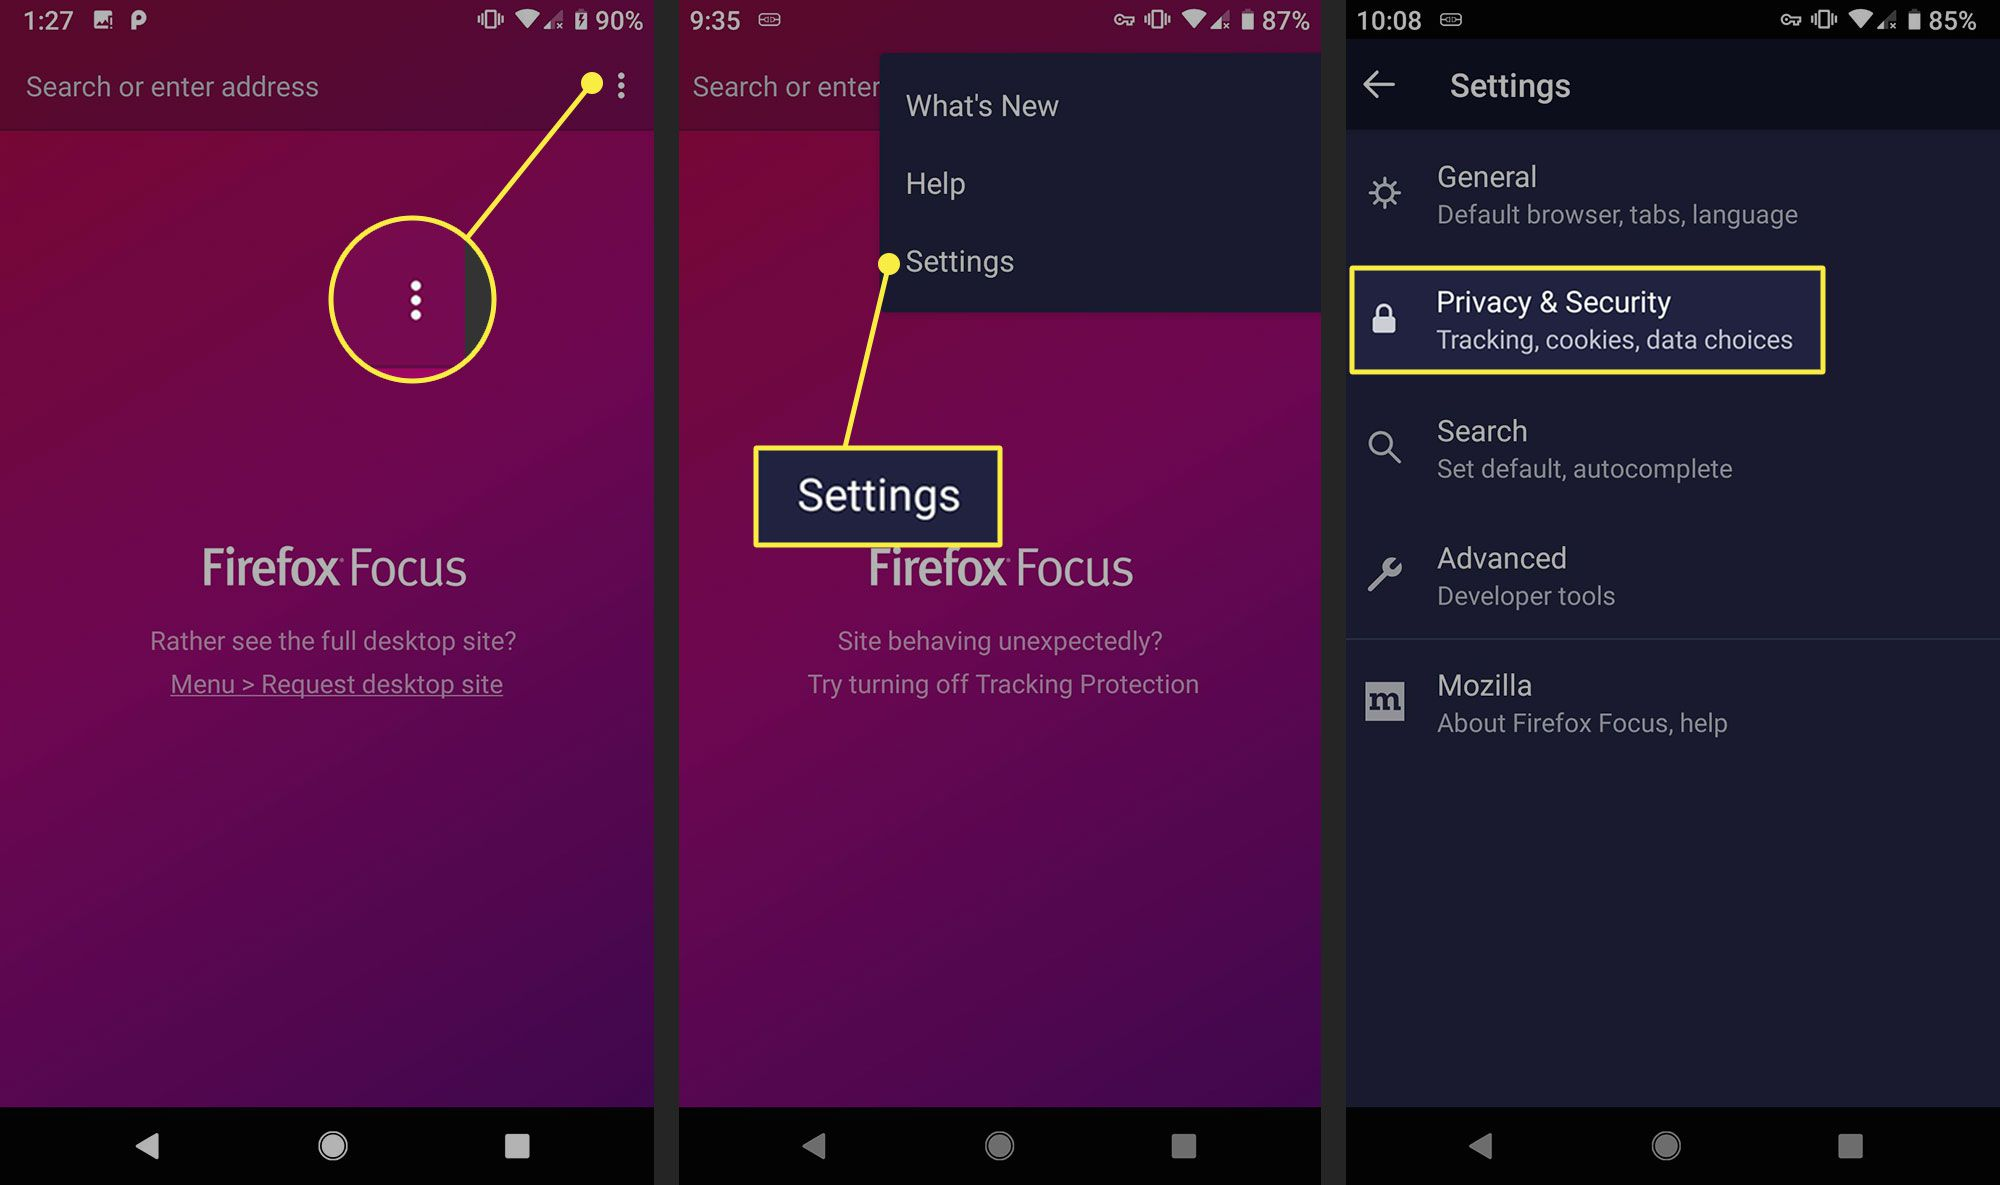 Privacy and Security in settings